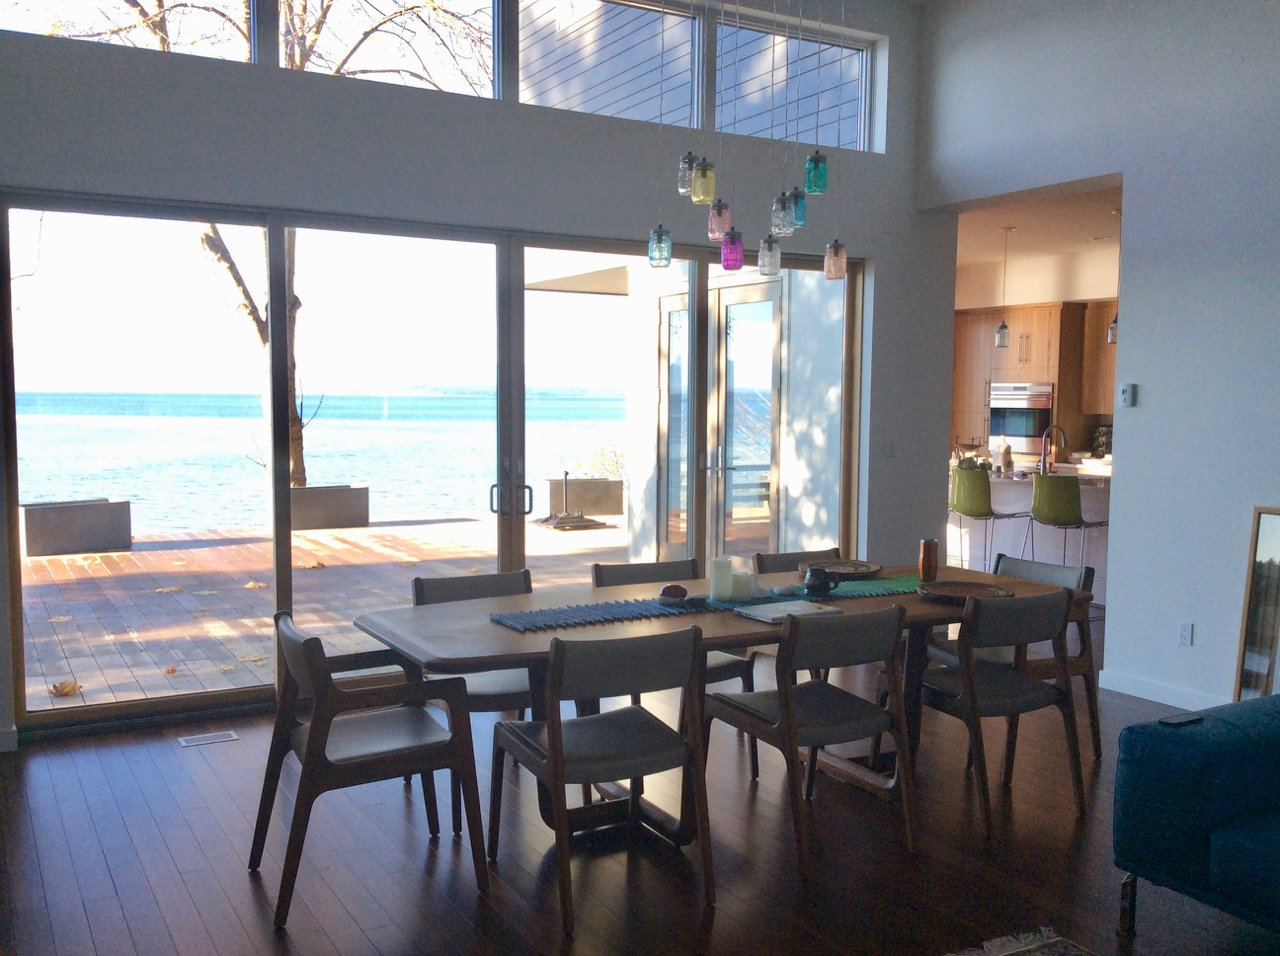 Dining Room, Table, Chair, Pendant Lighting, and Bamboo Floor Breeze Space with Kitchen on the right  Cortes Island Custom Blu Prefab by Mark Spevakow